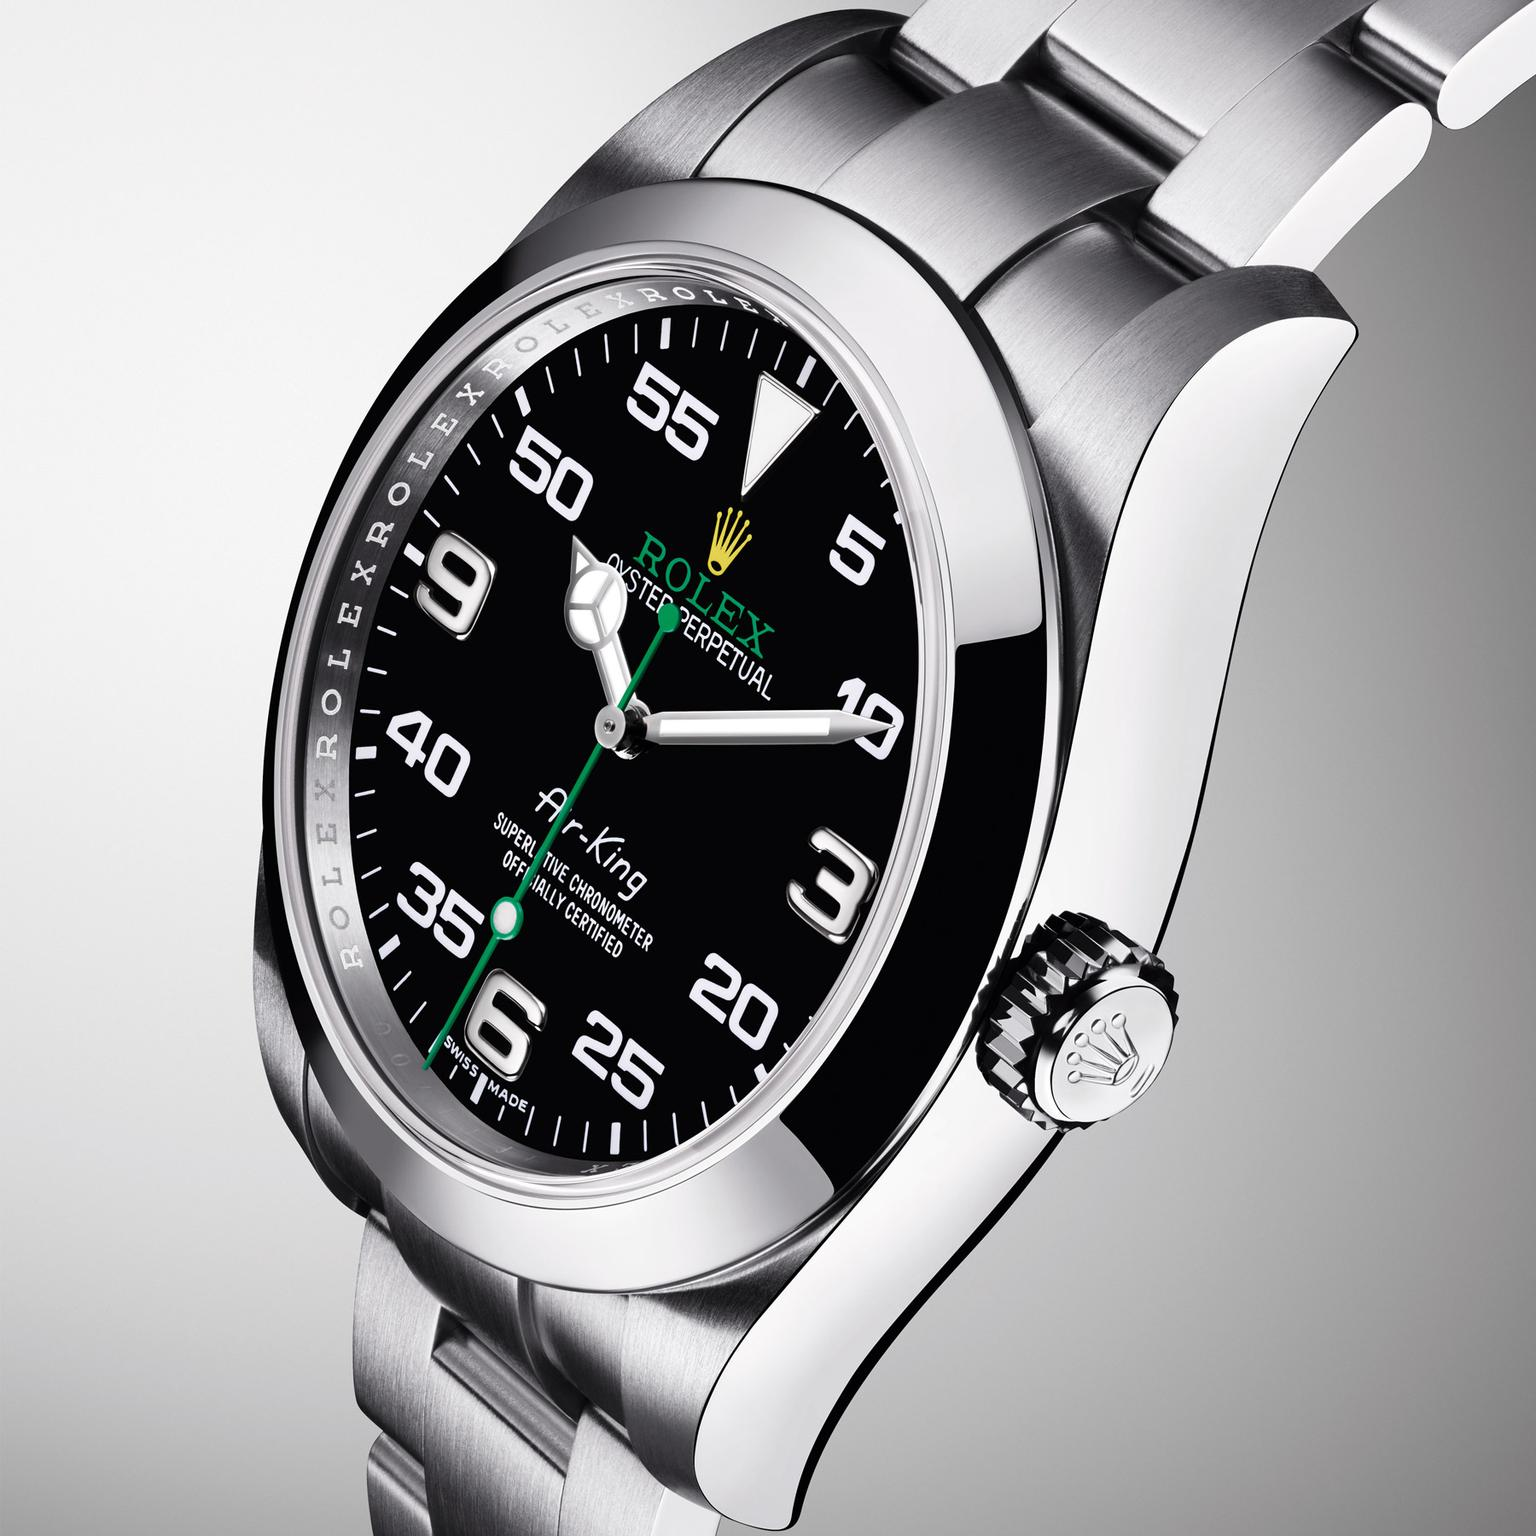 Rolexs Watches Oyster Perpetual Air King Watch